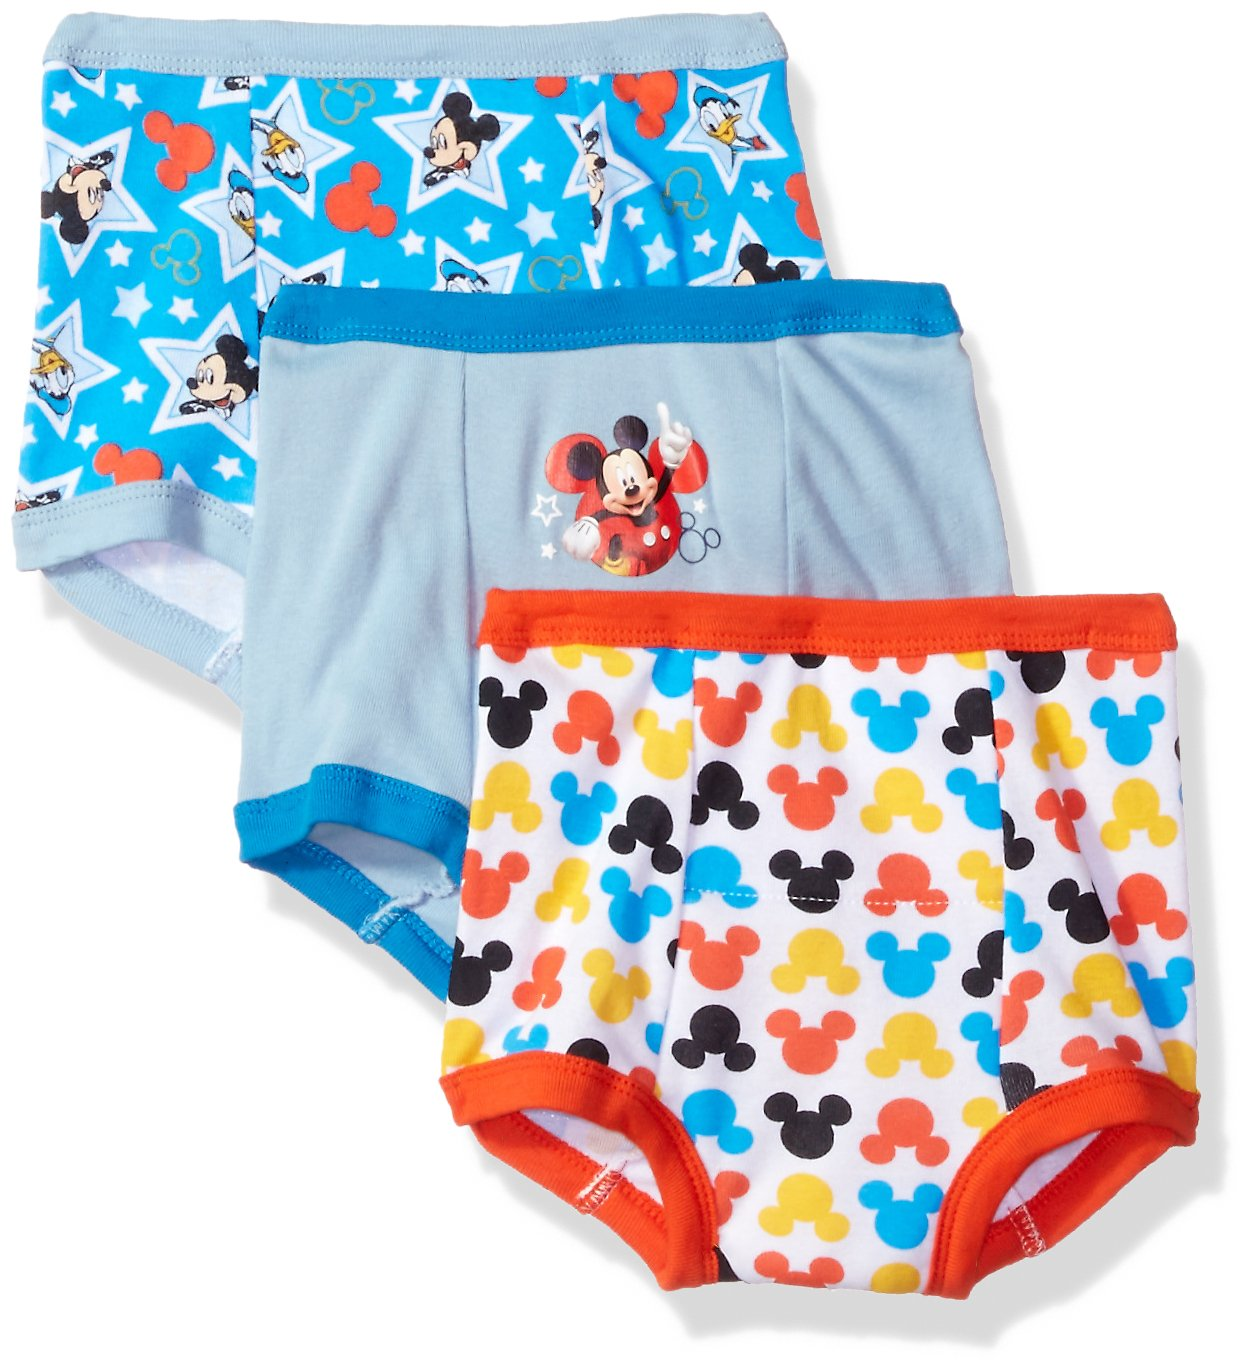 Disney Toddler Boys' Mickey Mouse 3pk Training Pant, Mickey Multi, 4T